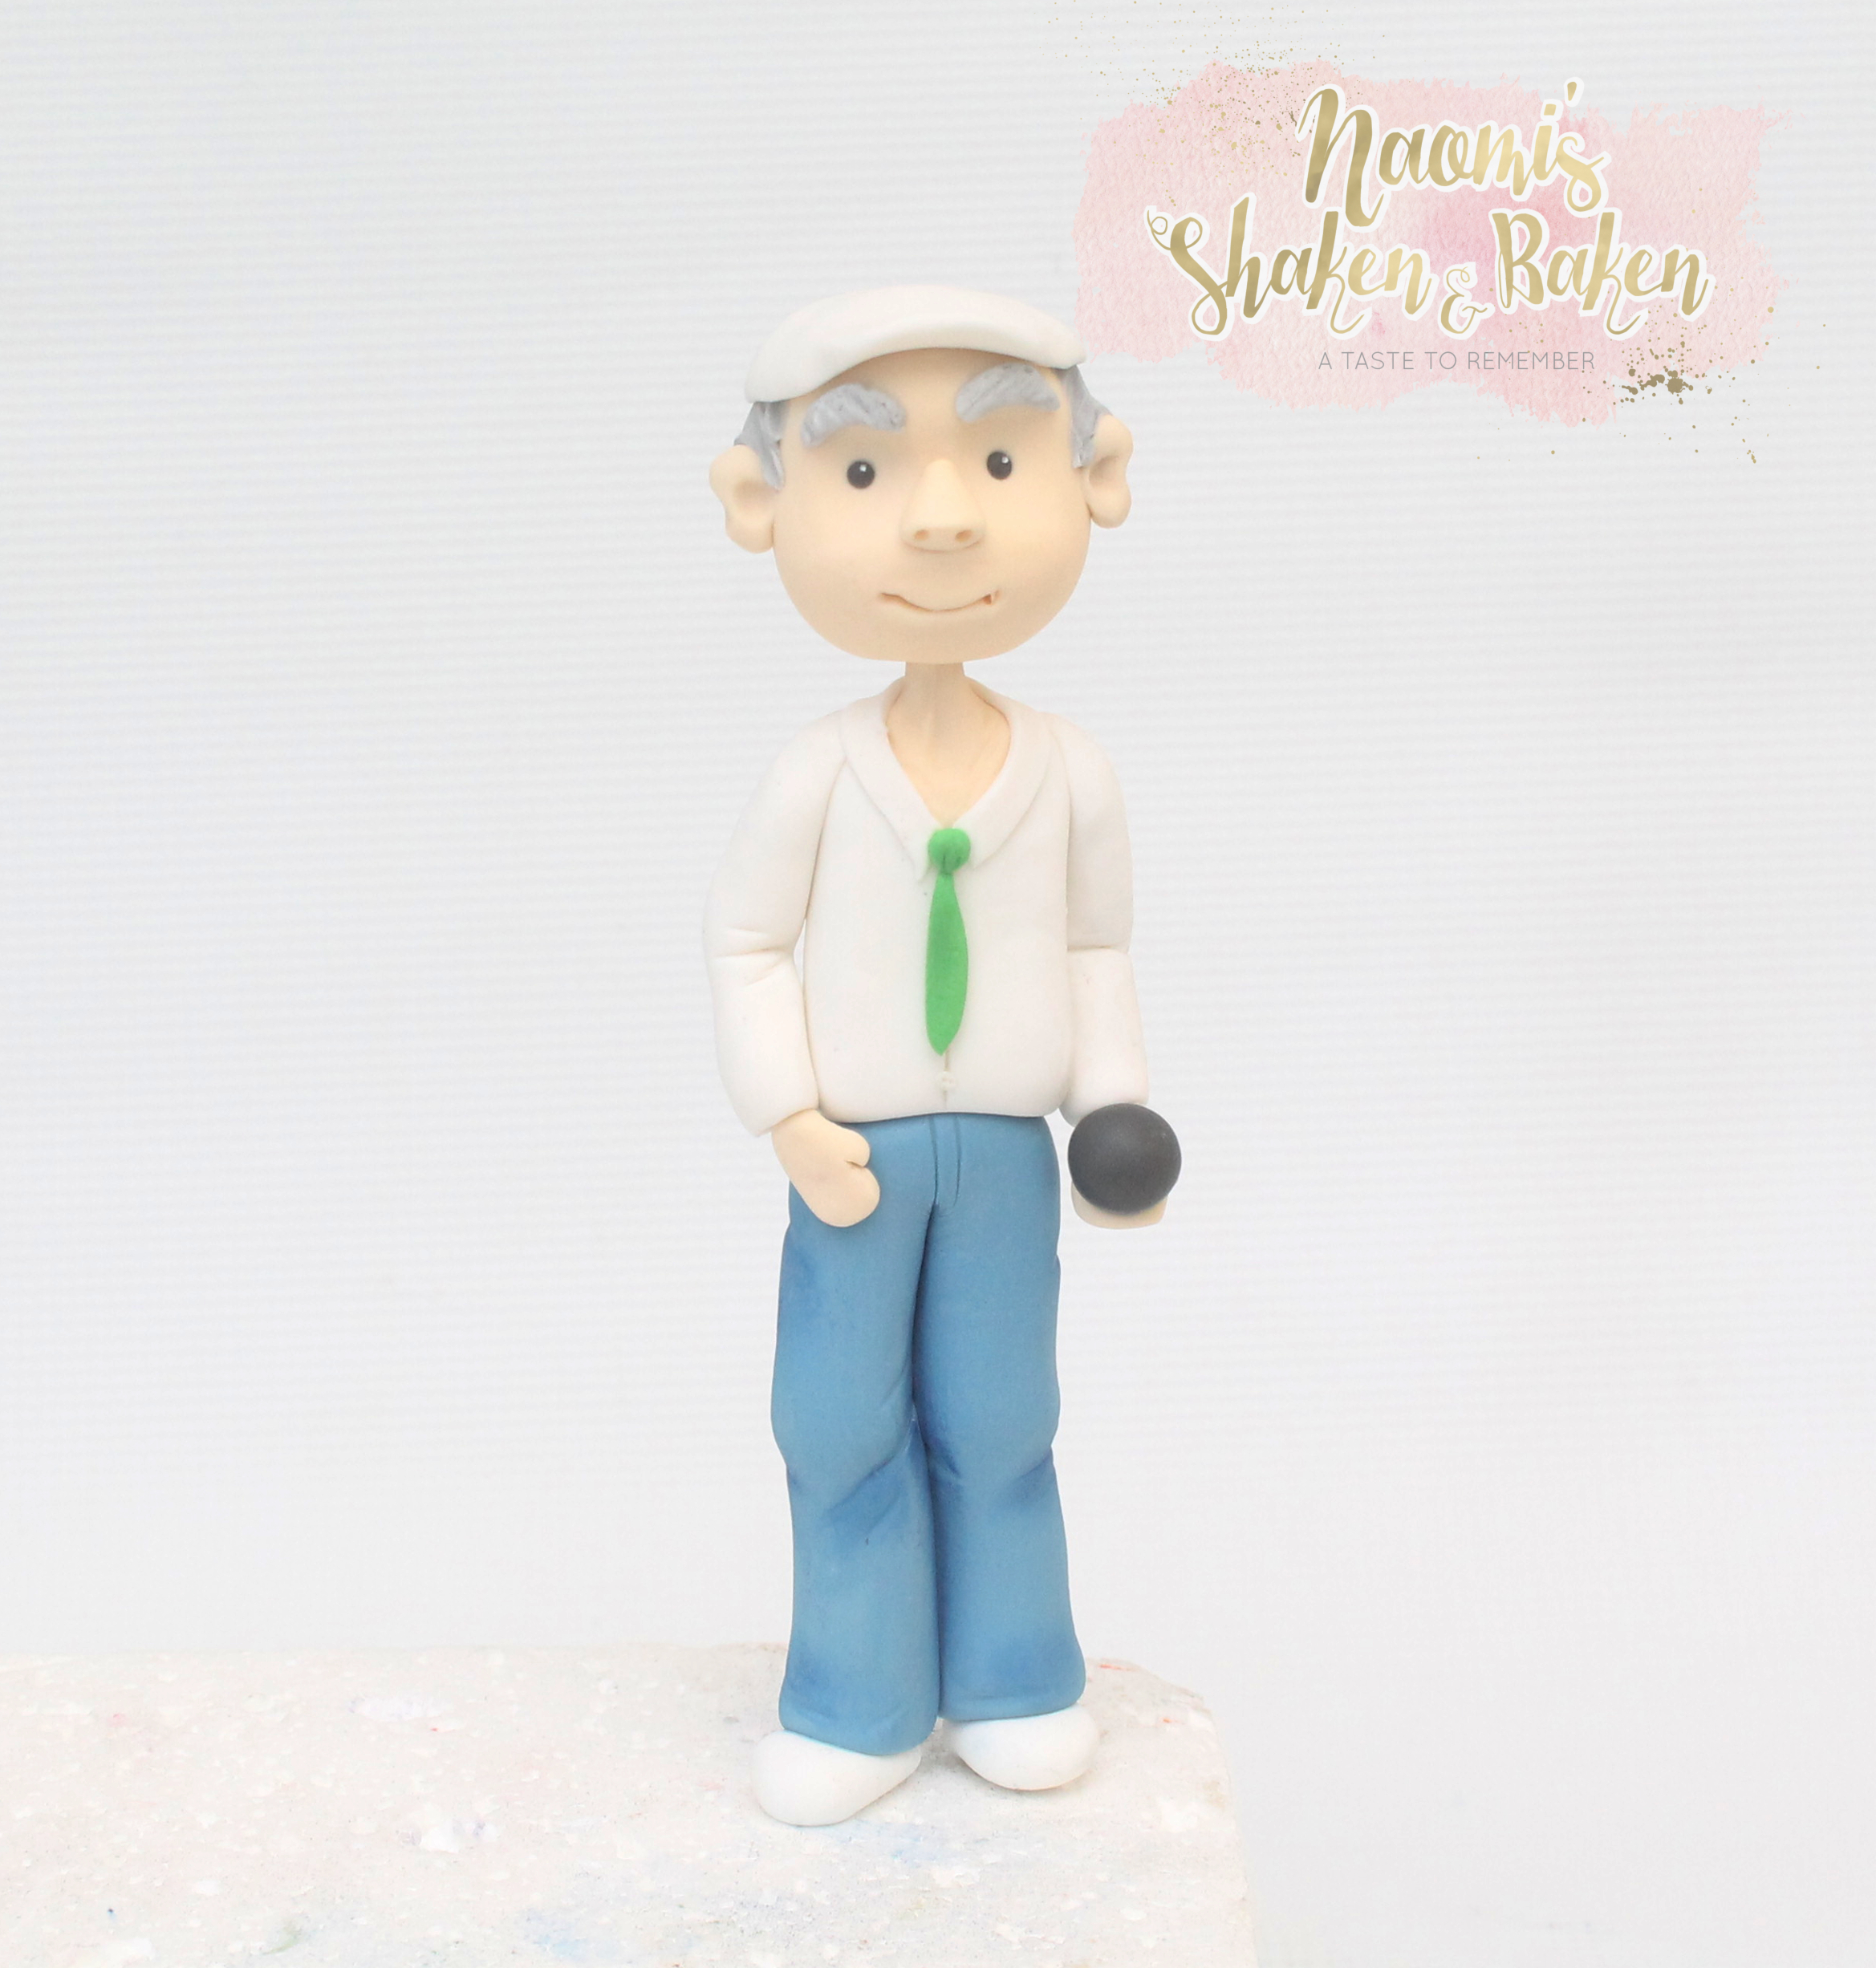 Old man bowling cake topper